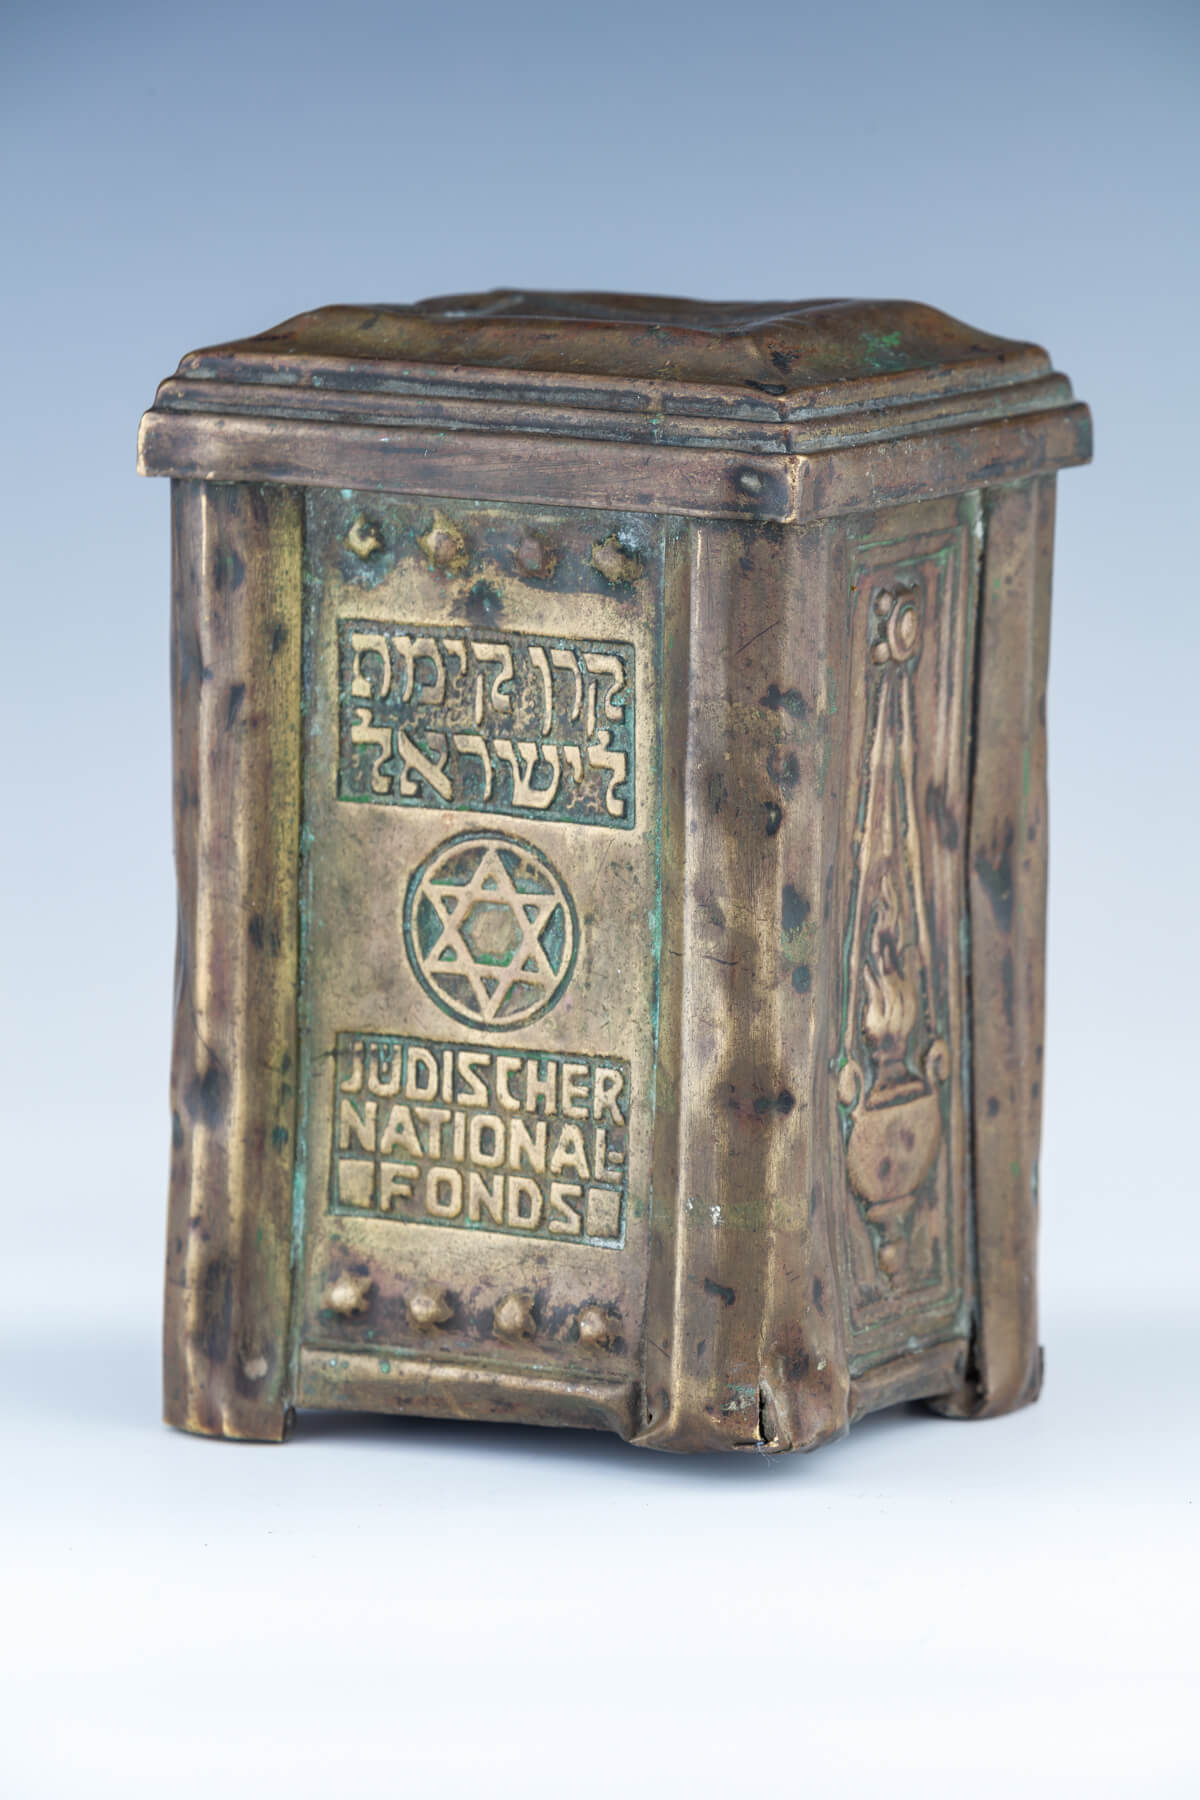 61. A Rare Brass Jnf Charity Box By Leopold Fleischhacker